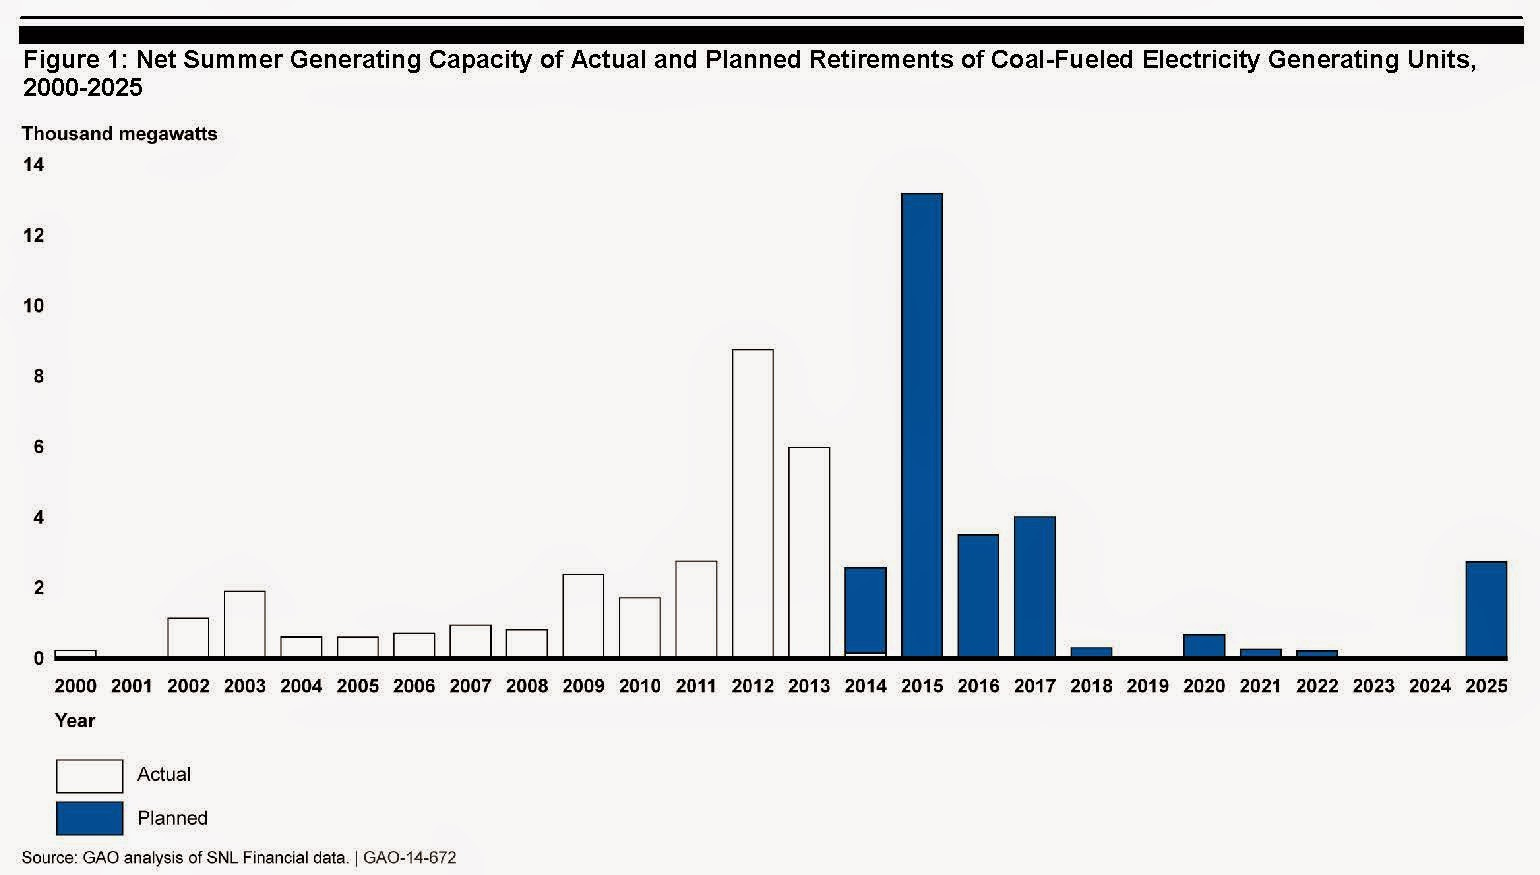 Art Berman Why The Debate Over Fracking Fallacy Is A Big Deal Natural Gas Power Plant Diagram Increase Demand For As Substitute Fuel Coal Retirements Will Continue Though 2025 And Have Been Ongoing Several Years Already